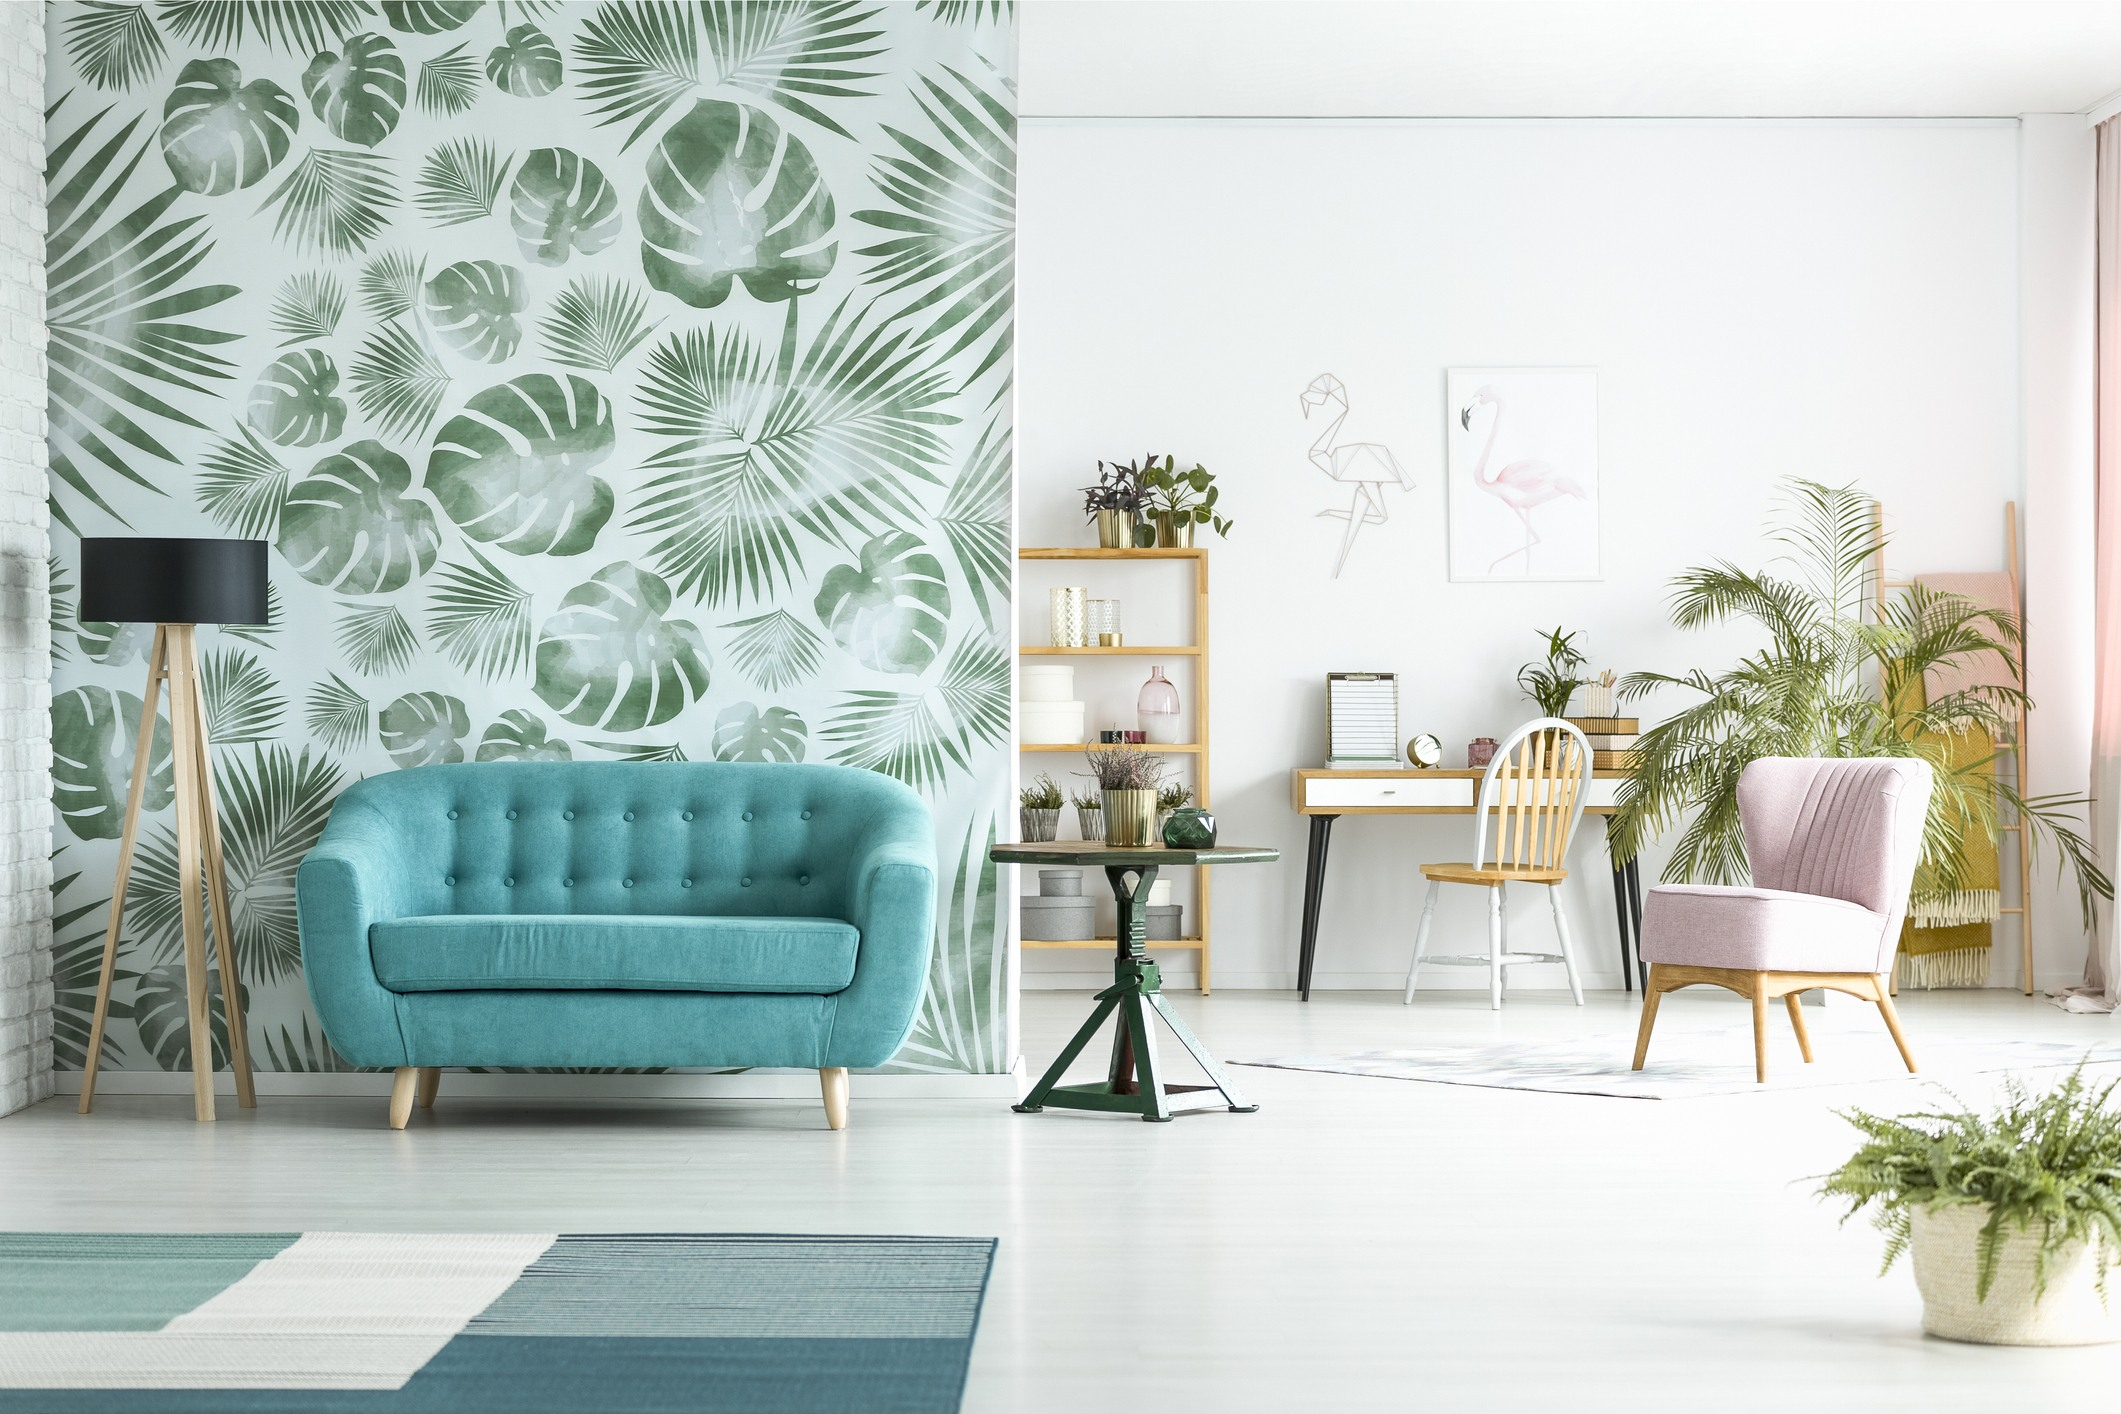 A fresh interior design in whites and shades of green